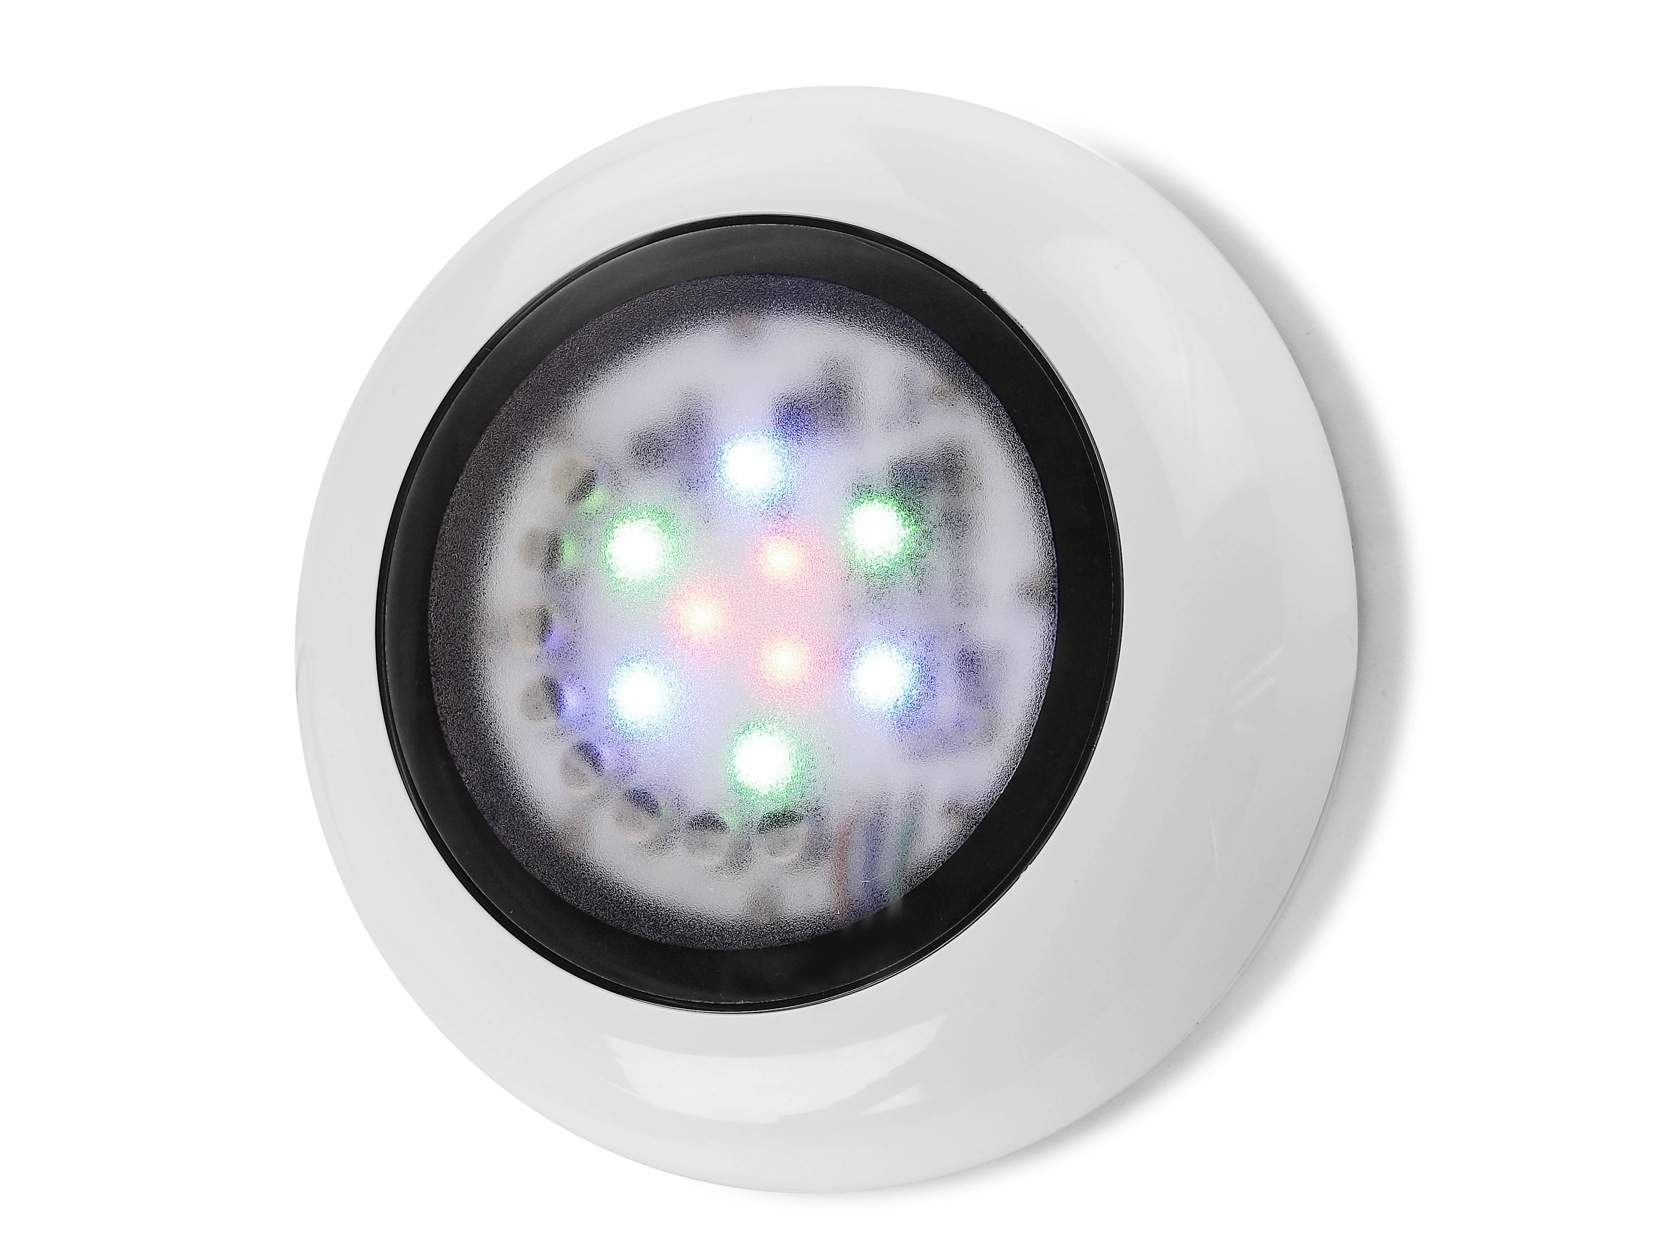 Aqua proyector para piscina de Superficie ø18cm IP68 LED 3x3w blanco Neutral 4200K